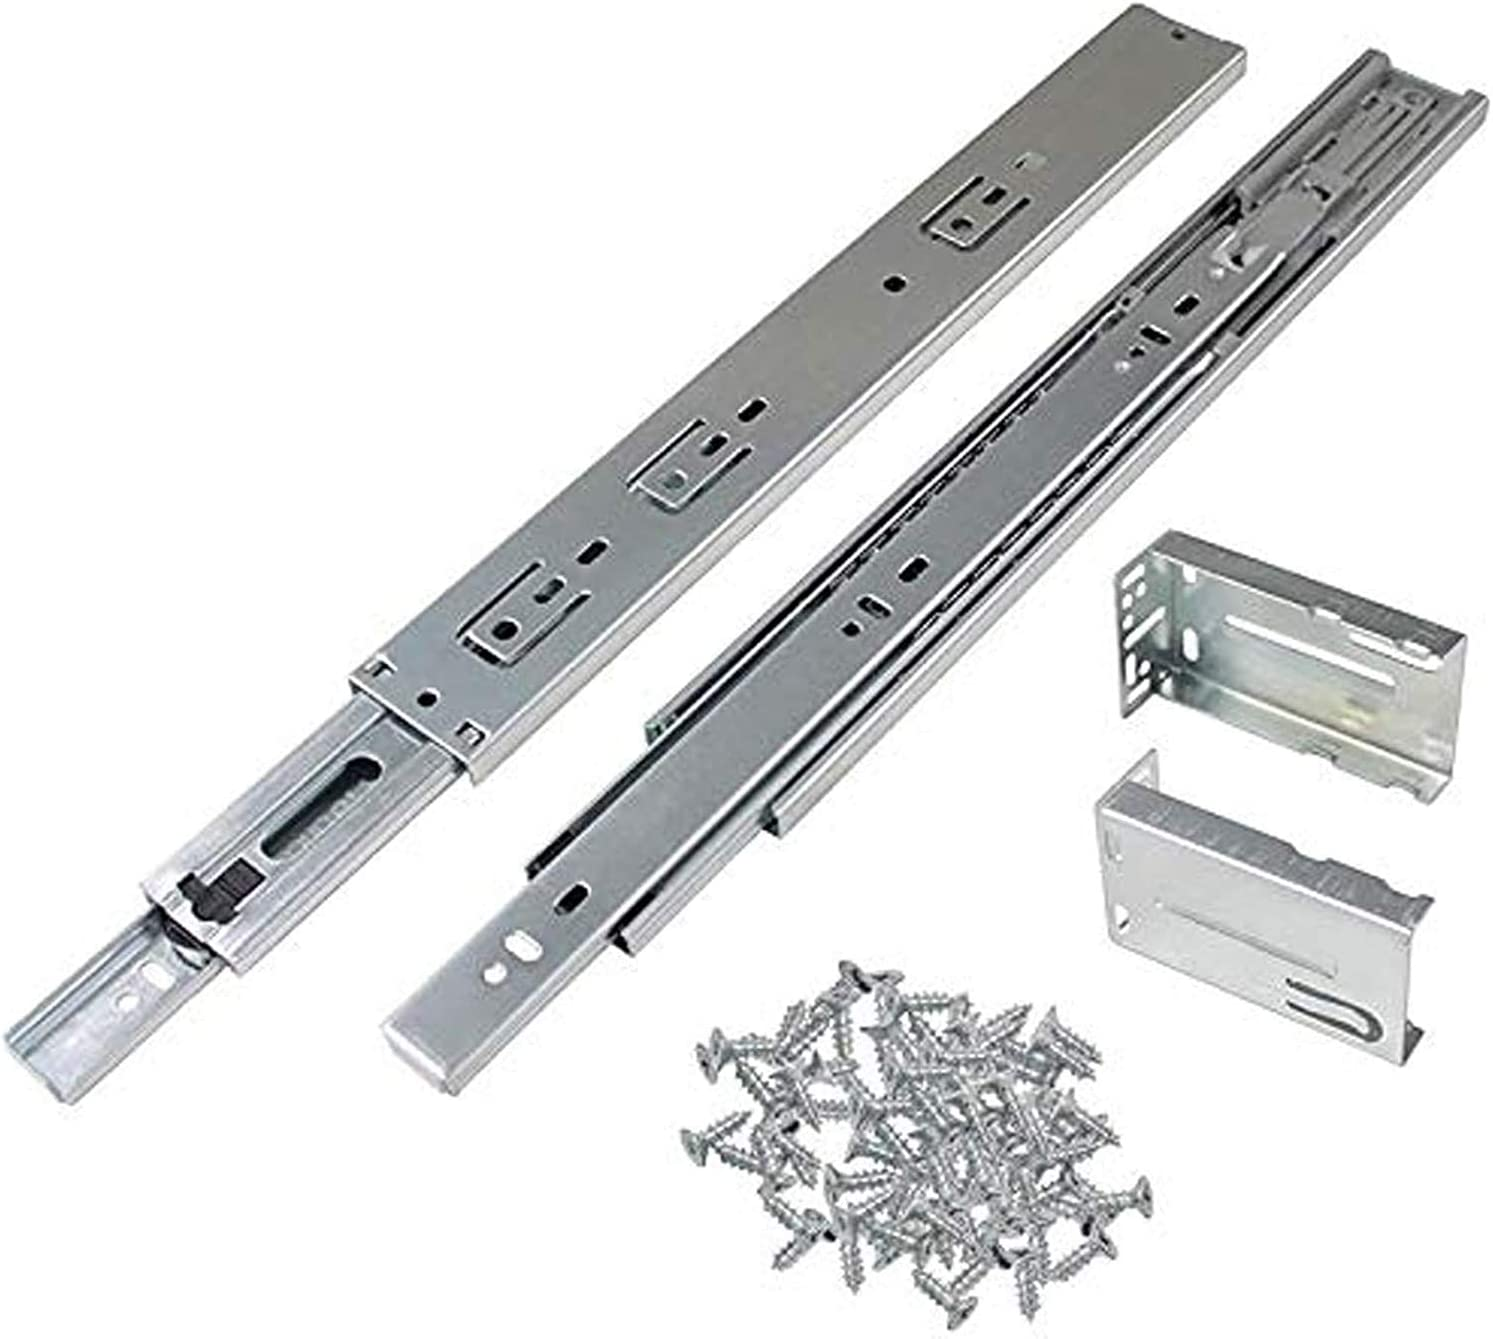 Gobrico 14-Inch Full Extension Rear/Side Mount Drawer Slides with Brackets Soft/Self Closing Ball Bearing Drawer Runners Heavy Duty Less Noise Furniture Drawer Rail Runners, 10Pairs